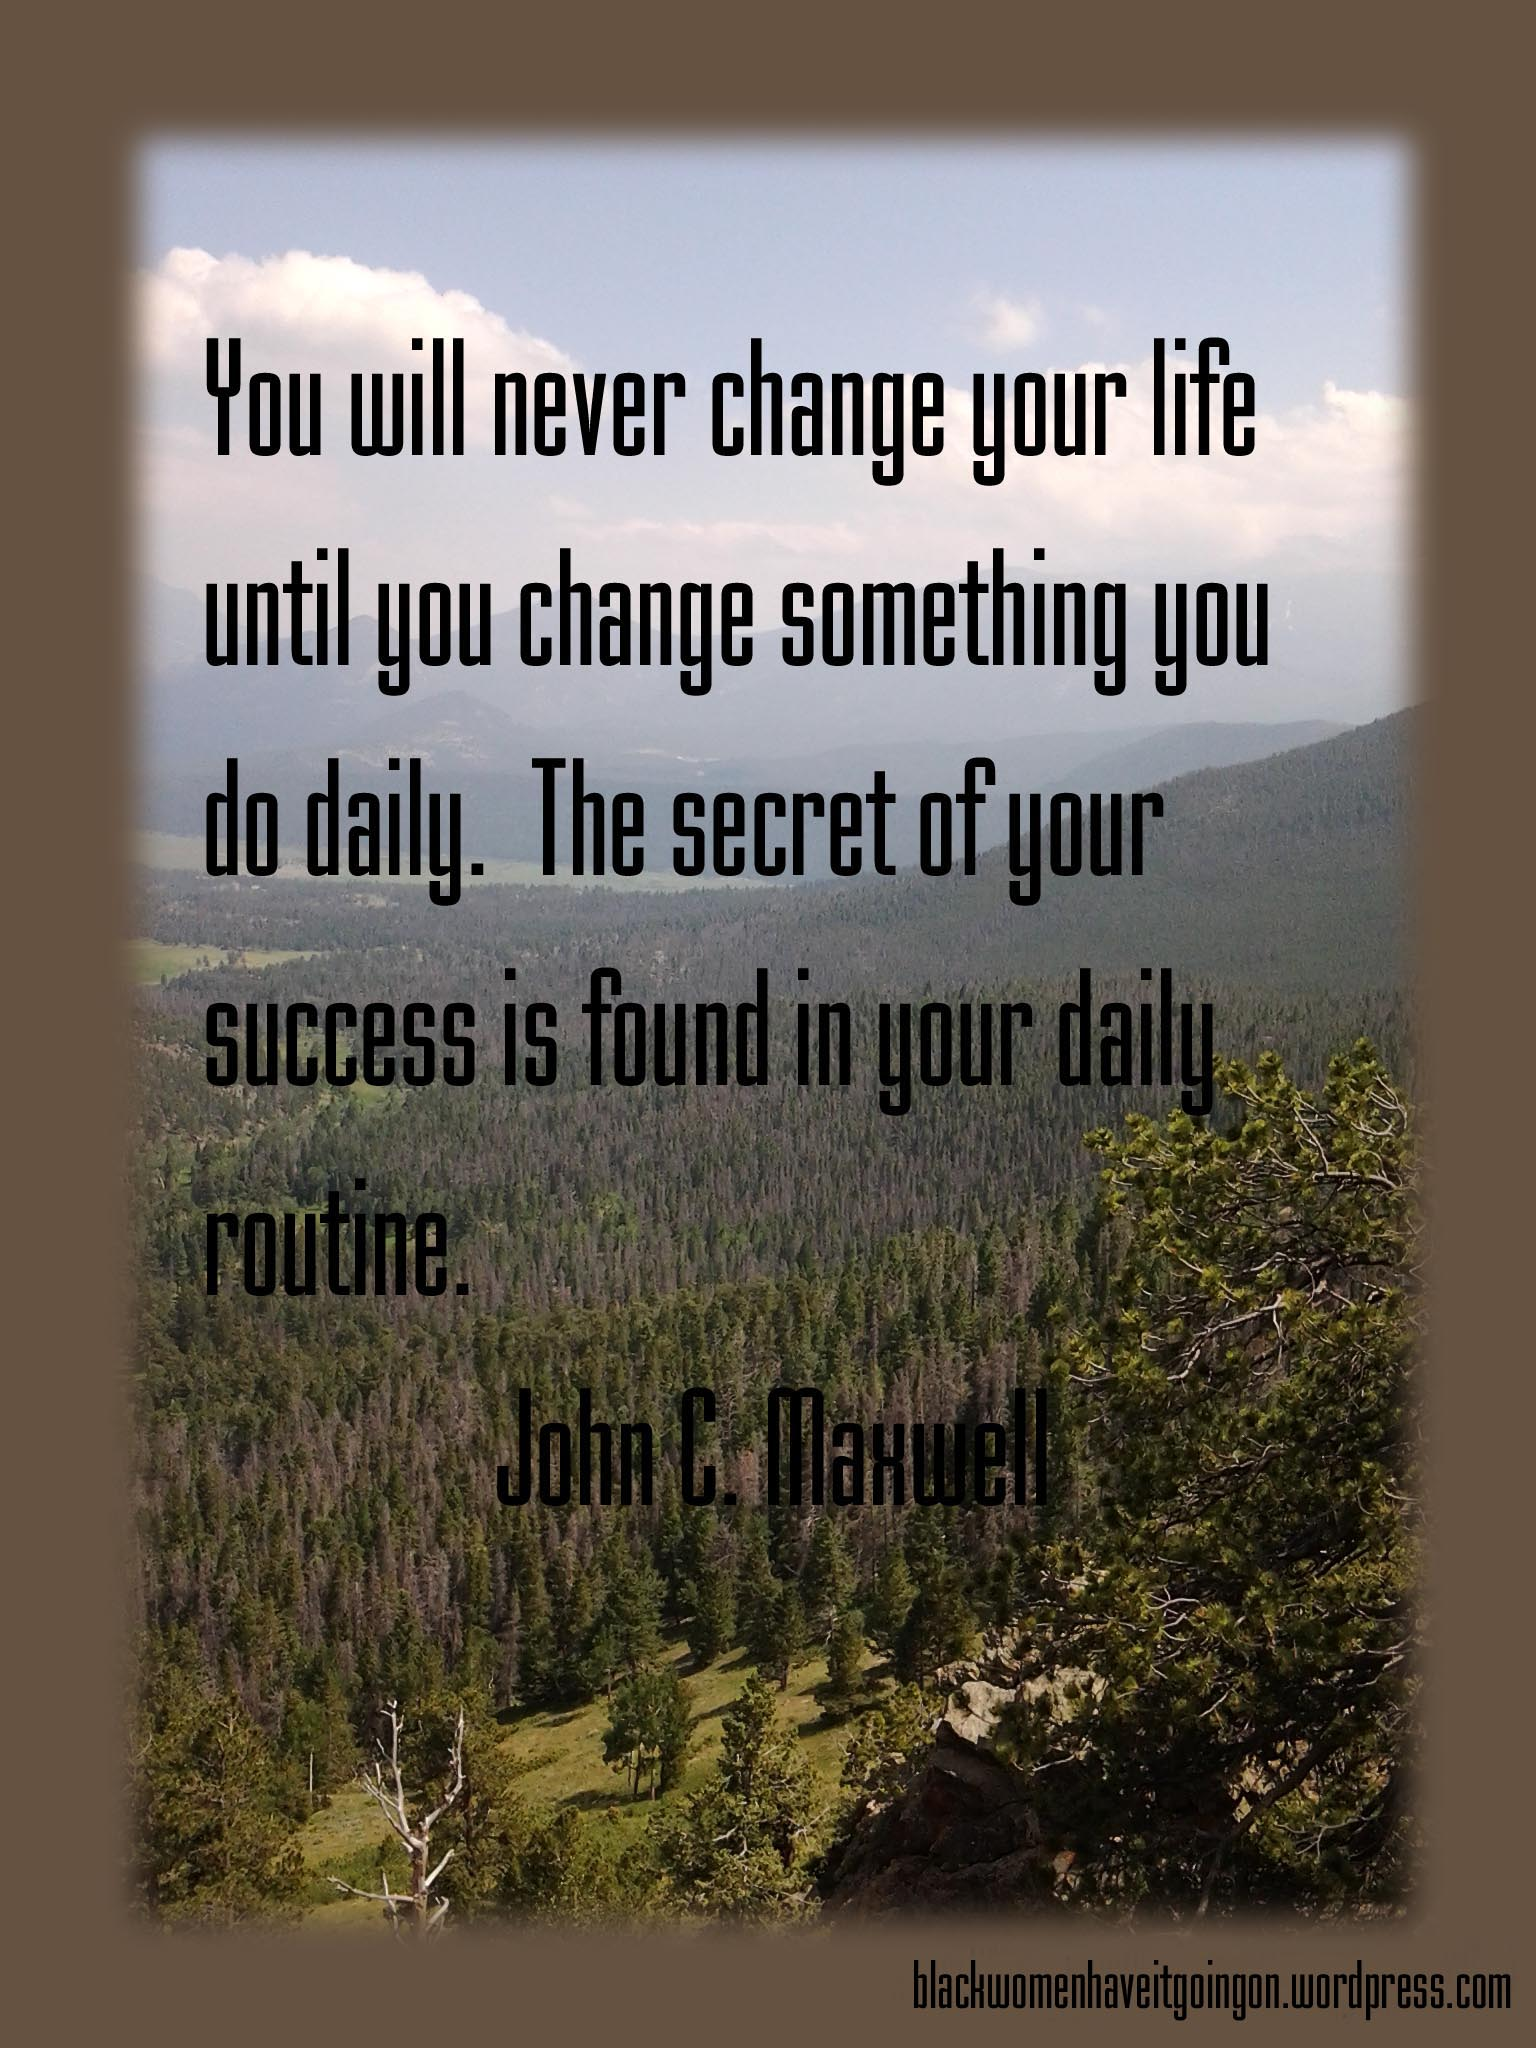 Quotes On Changes In Life Quotes To Change Your Life John Cmaxwell  Black Women Have It